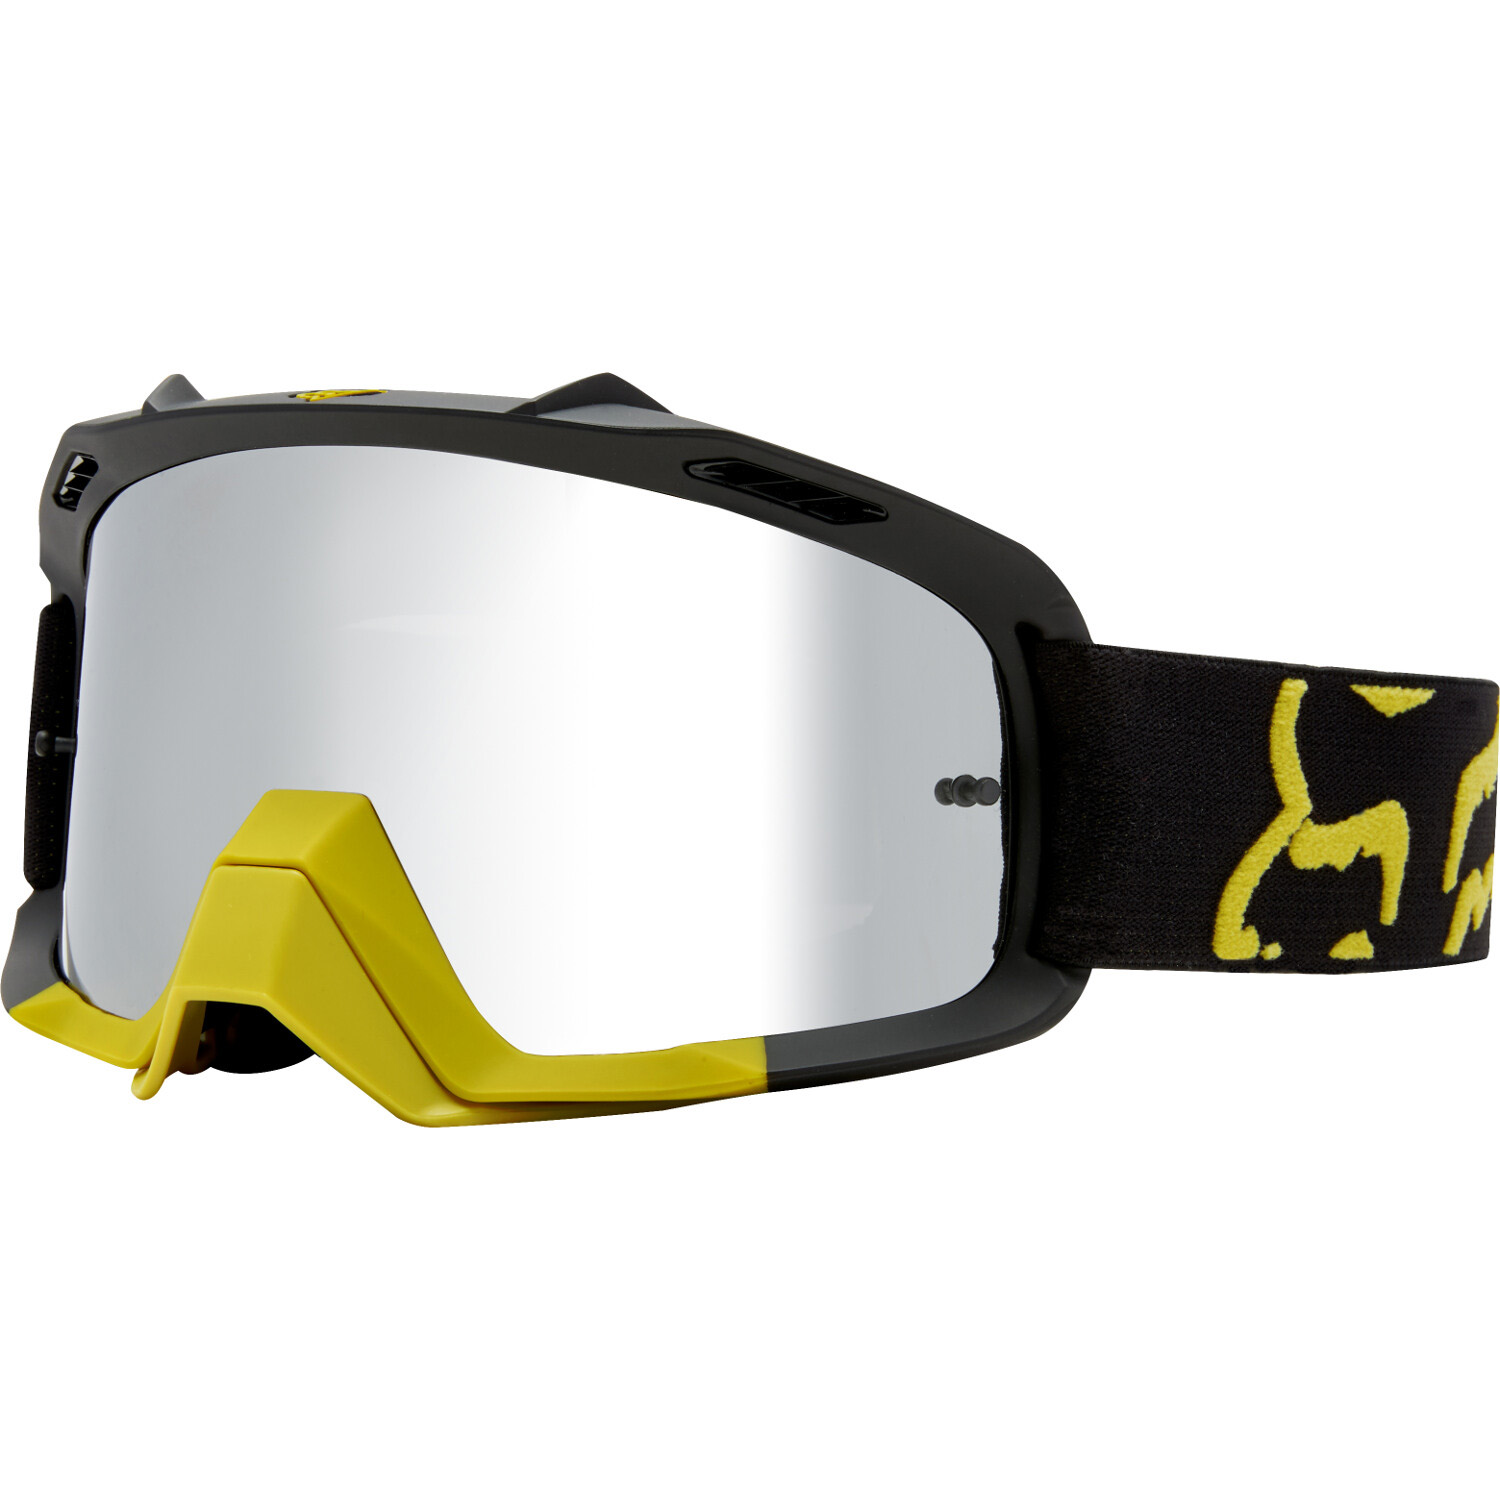 19966-547-OS Fox Racing Air Space Preme Dark Yellow Motocross Enduro Off-Road Goggle Masque Brille Crossbril